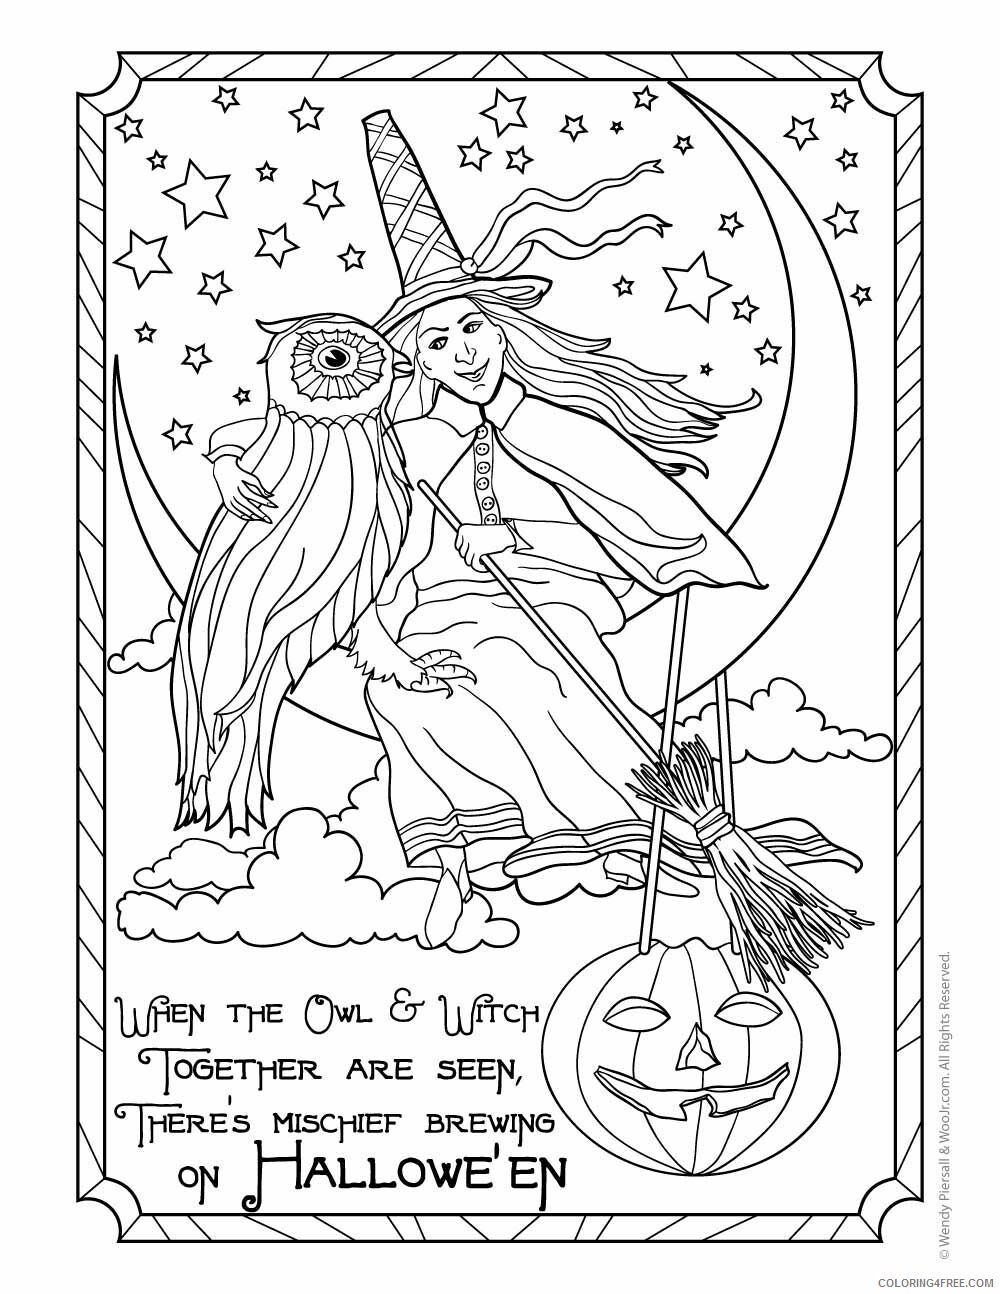 Witch Coloring Pages for Girls Halloween Witch 2 Printable 2021 1398 Coloring4free